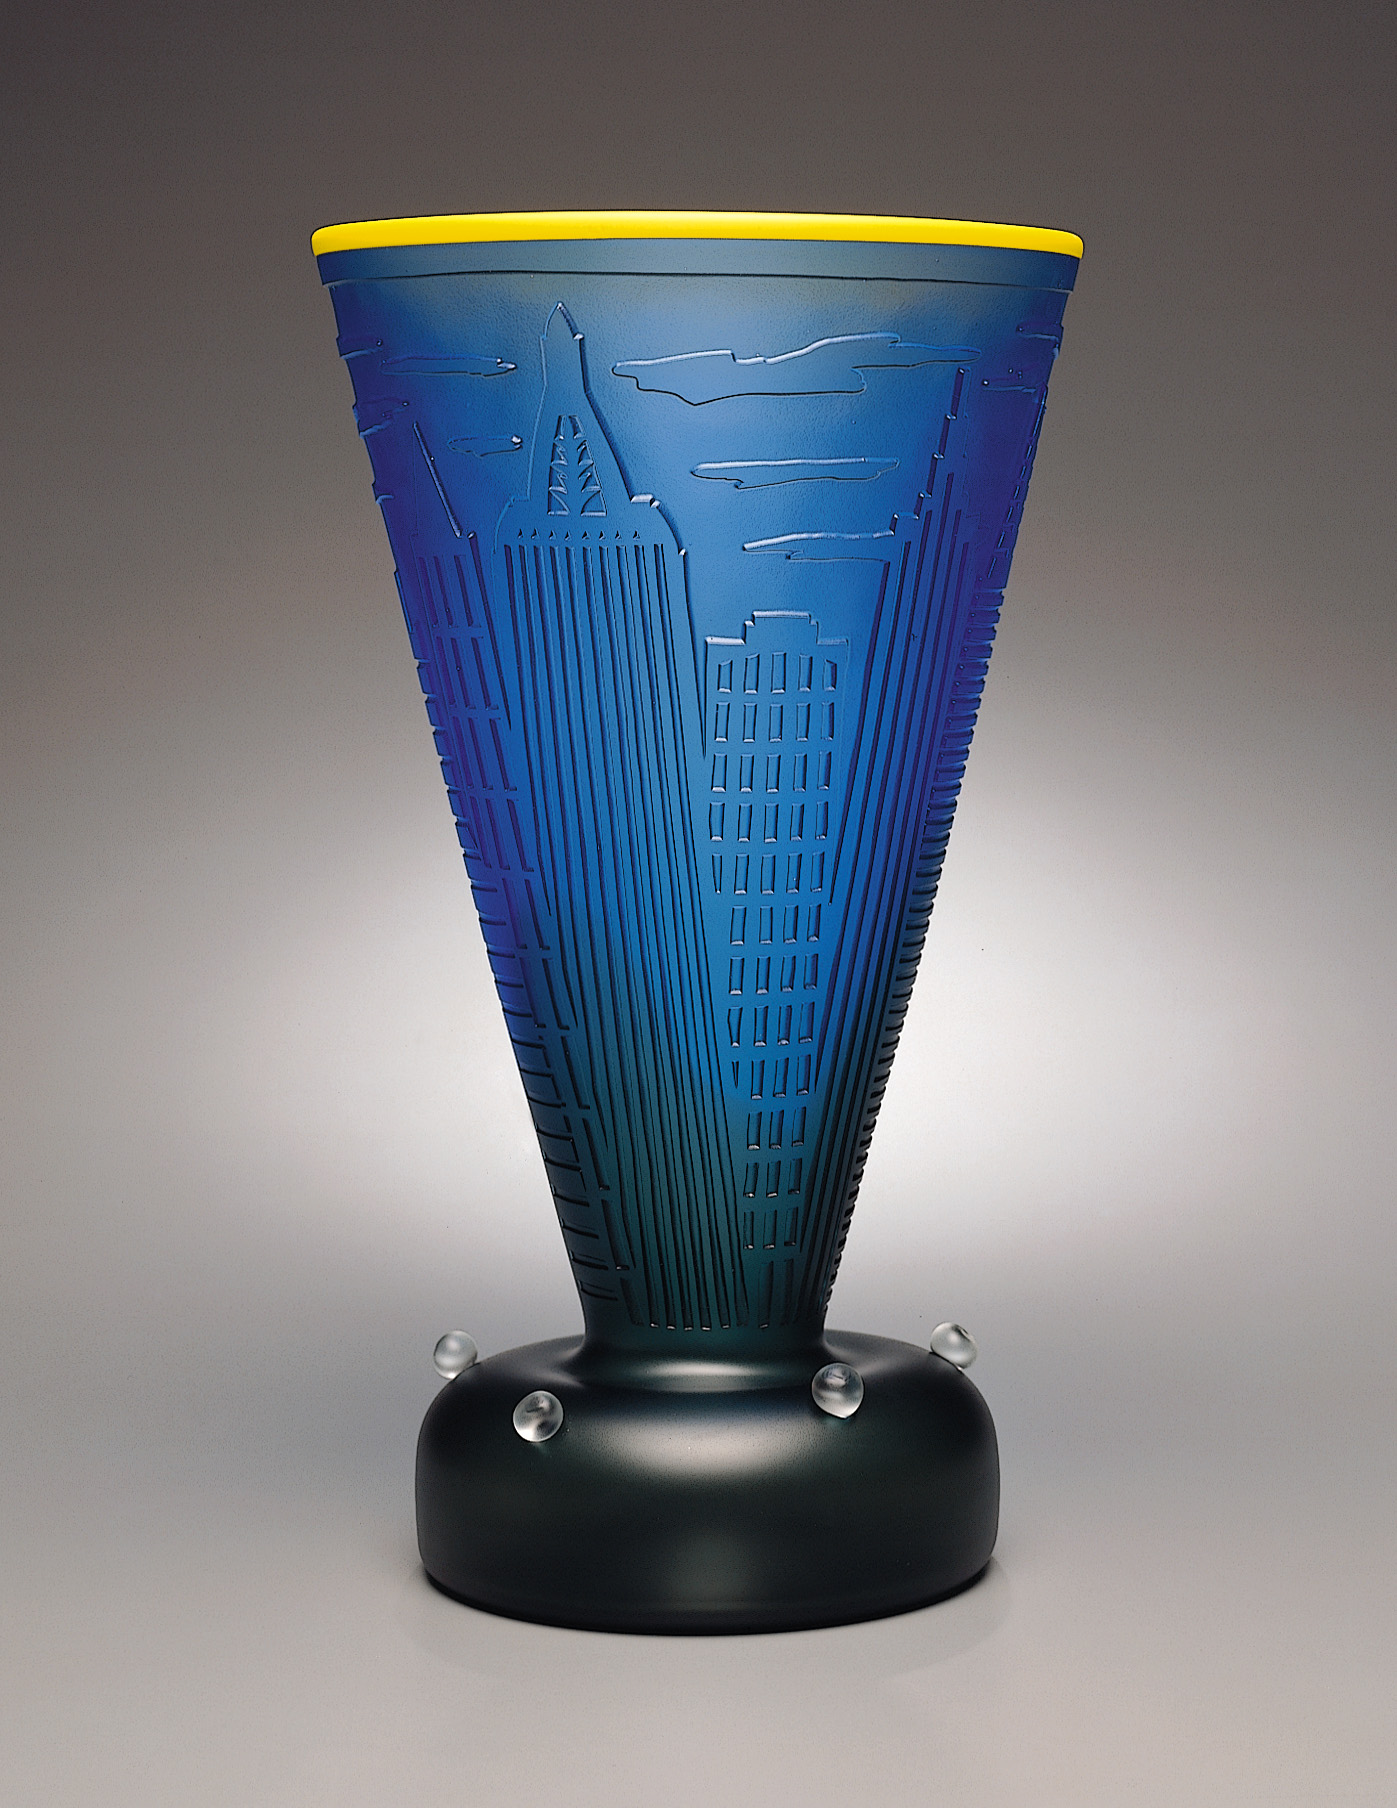 New York 6   1994. Blown glass, sandblasted and acid polished. 19 x 11 x 11""